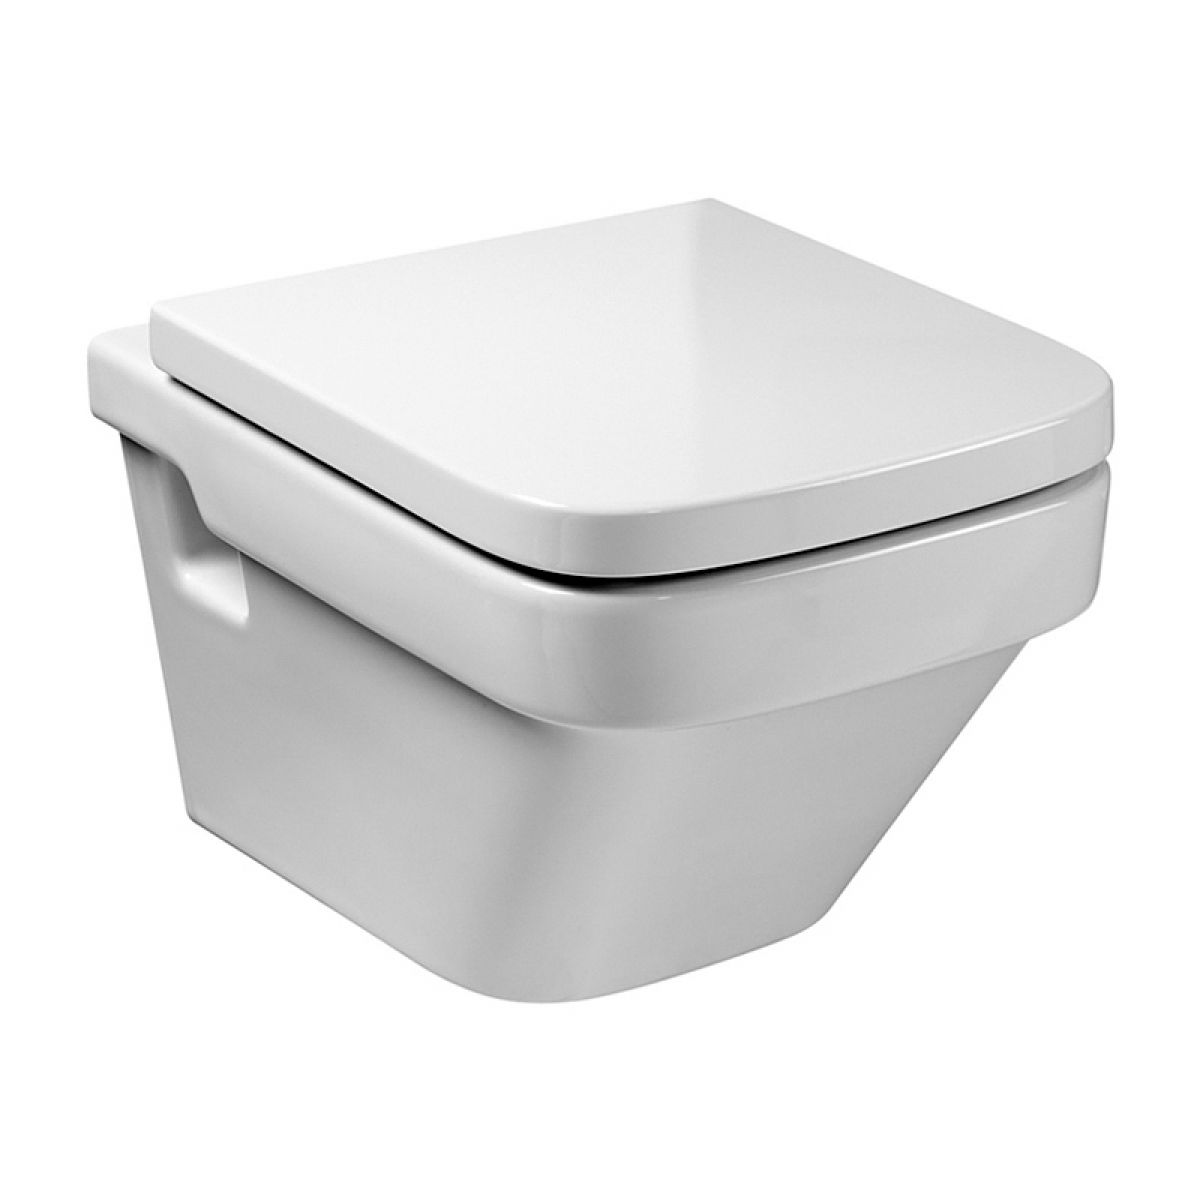 Roca dama n wall hung toilet with seat uk bathrooms for Roca dama toilet